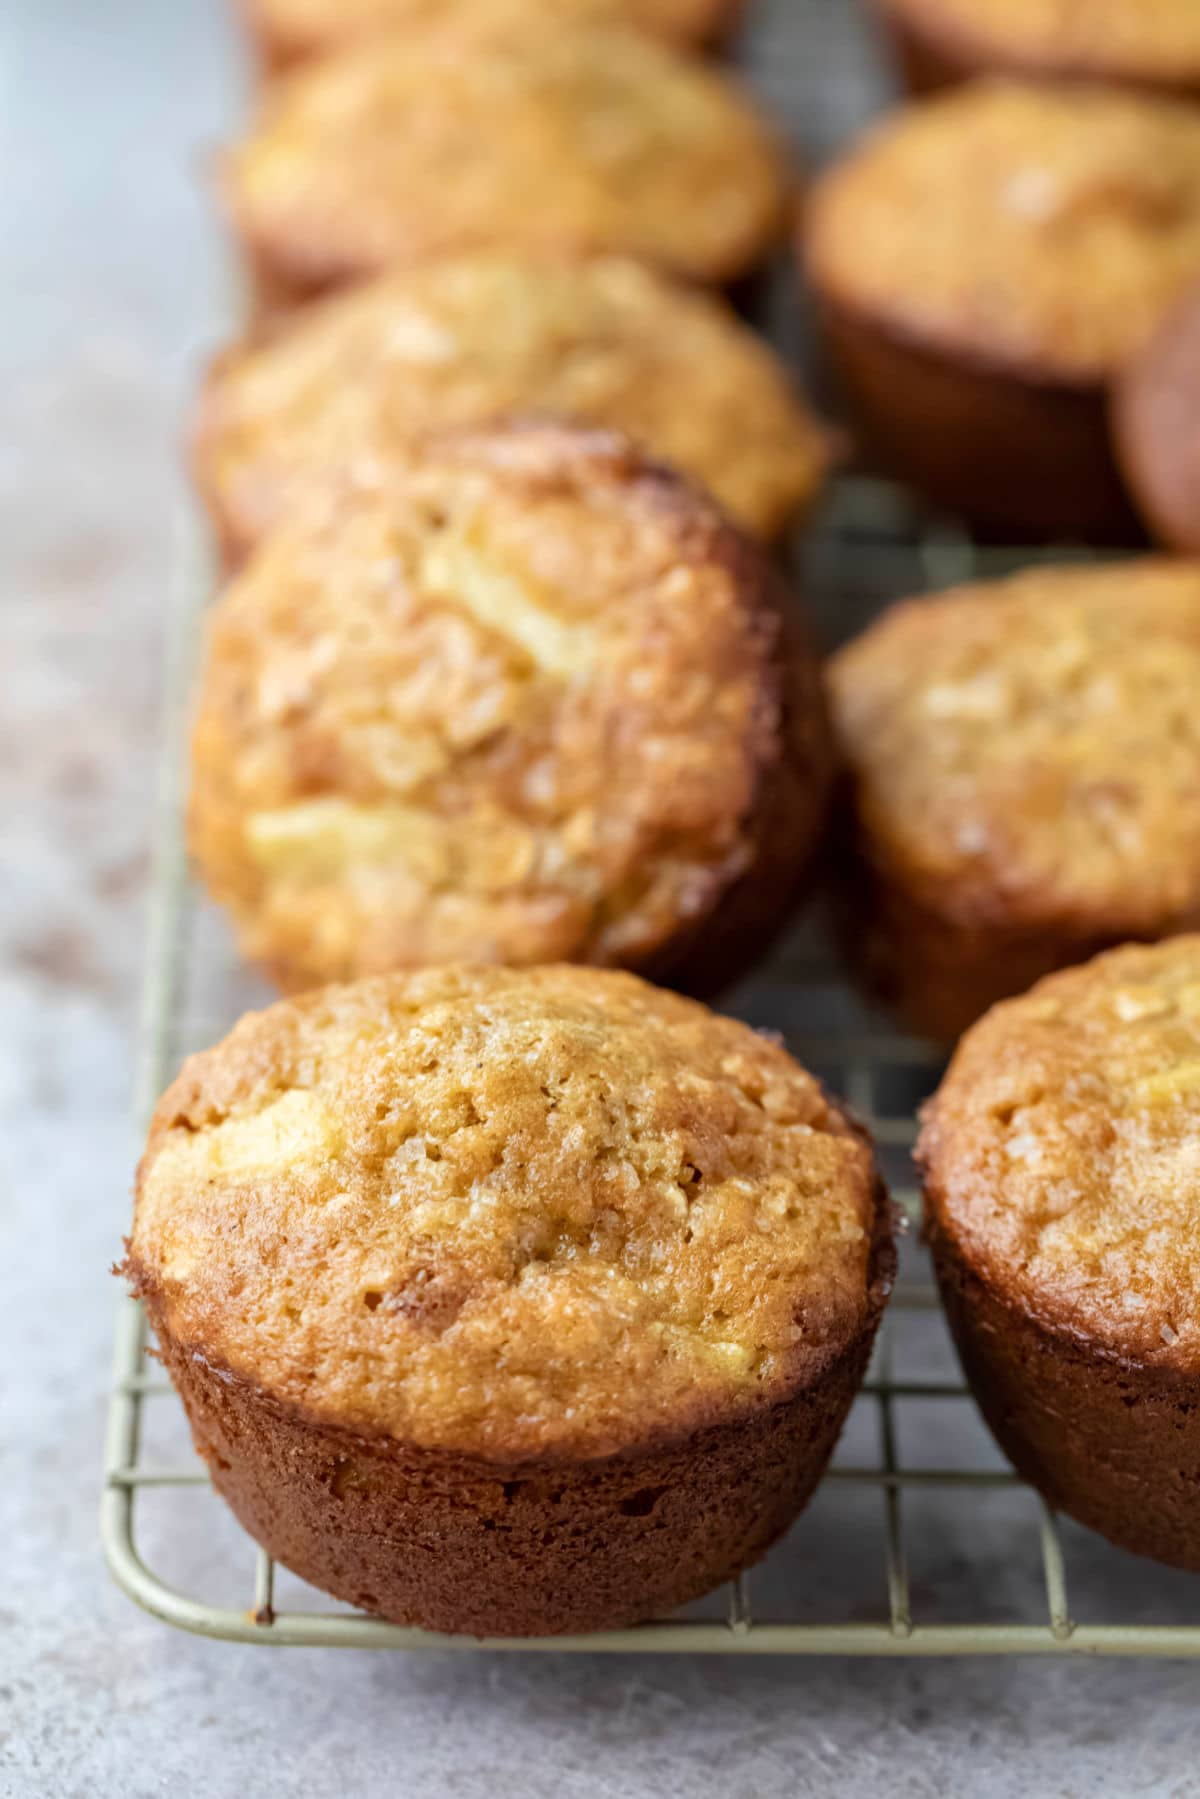 Apple cinnamon oatmeal muffins on a wire cooling rack.